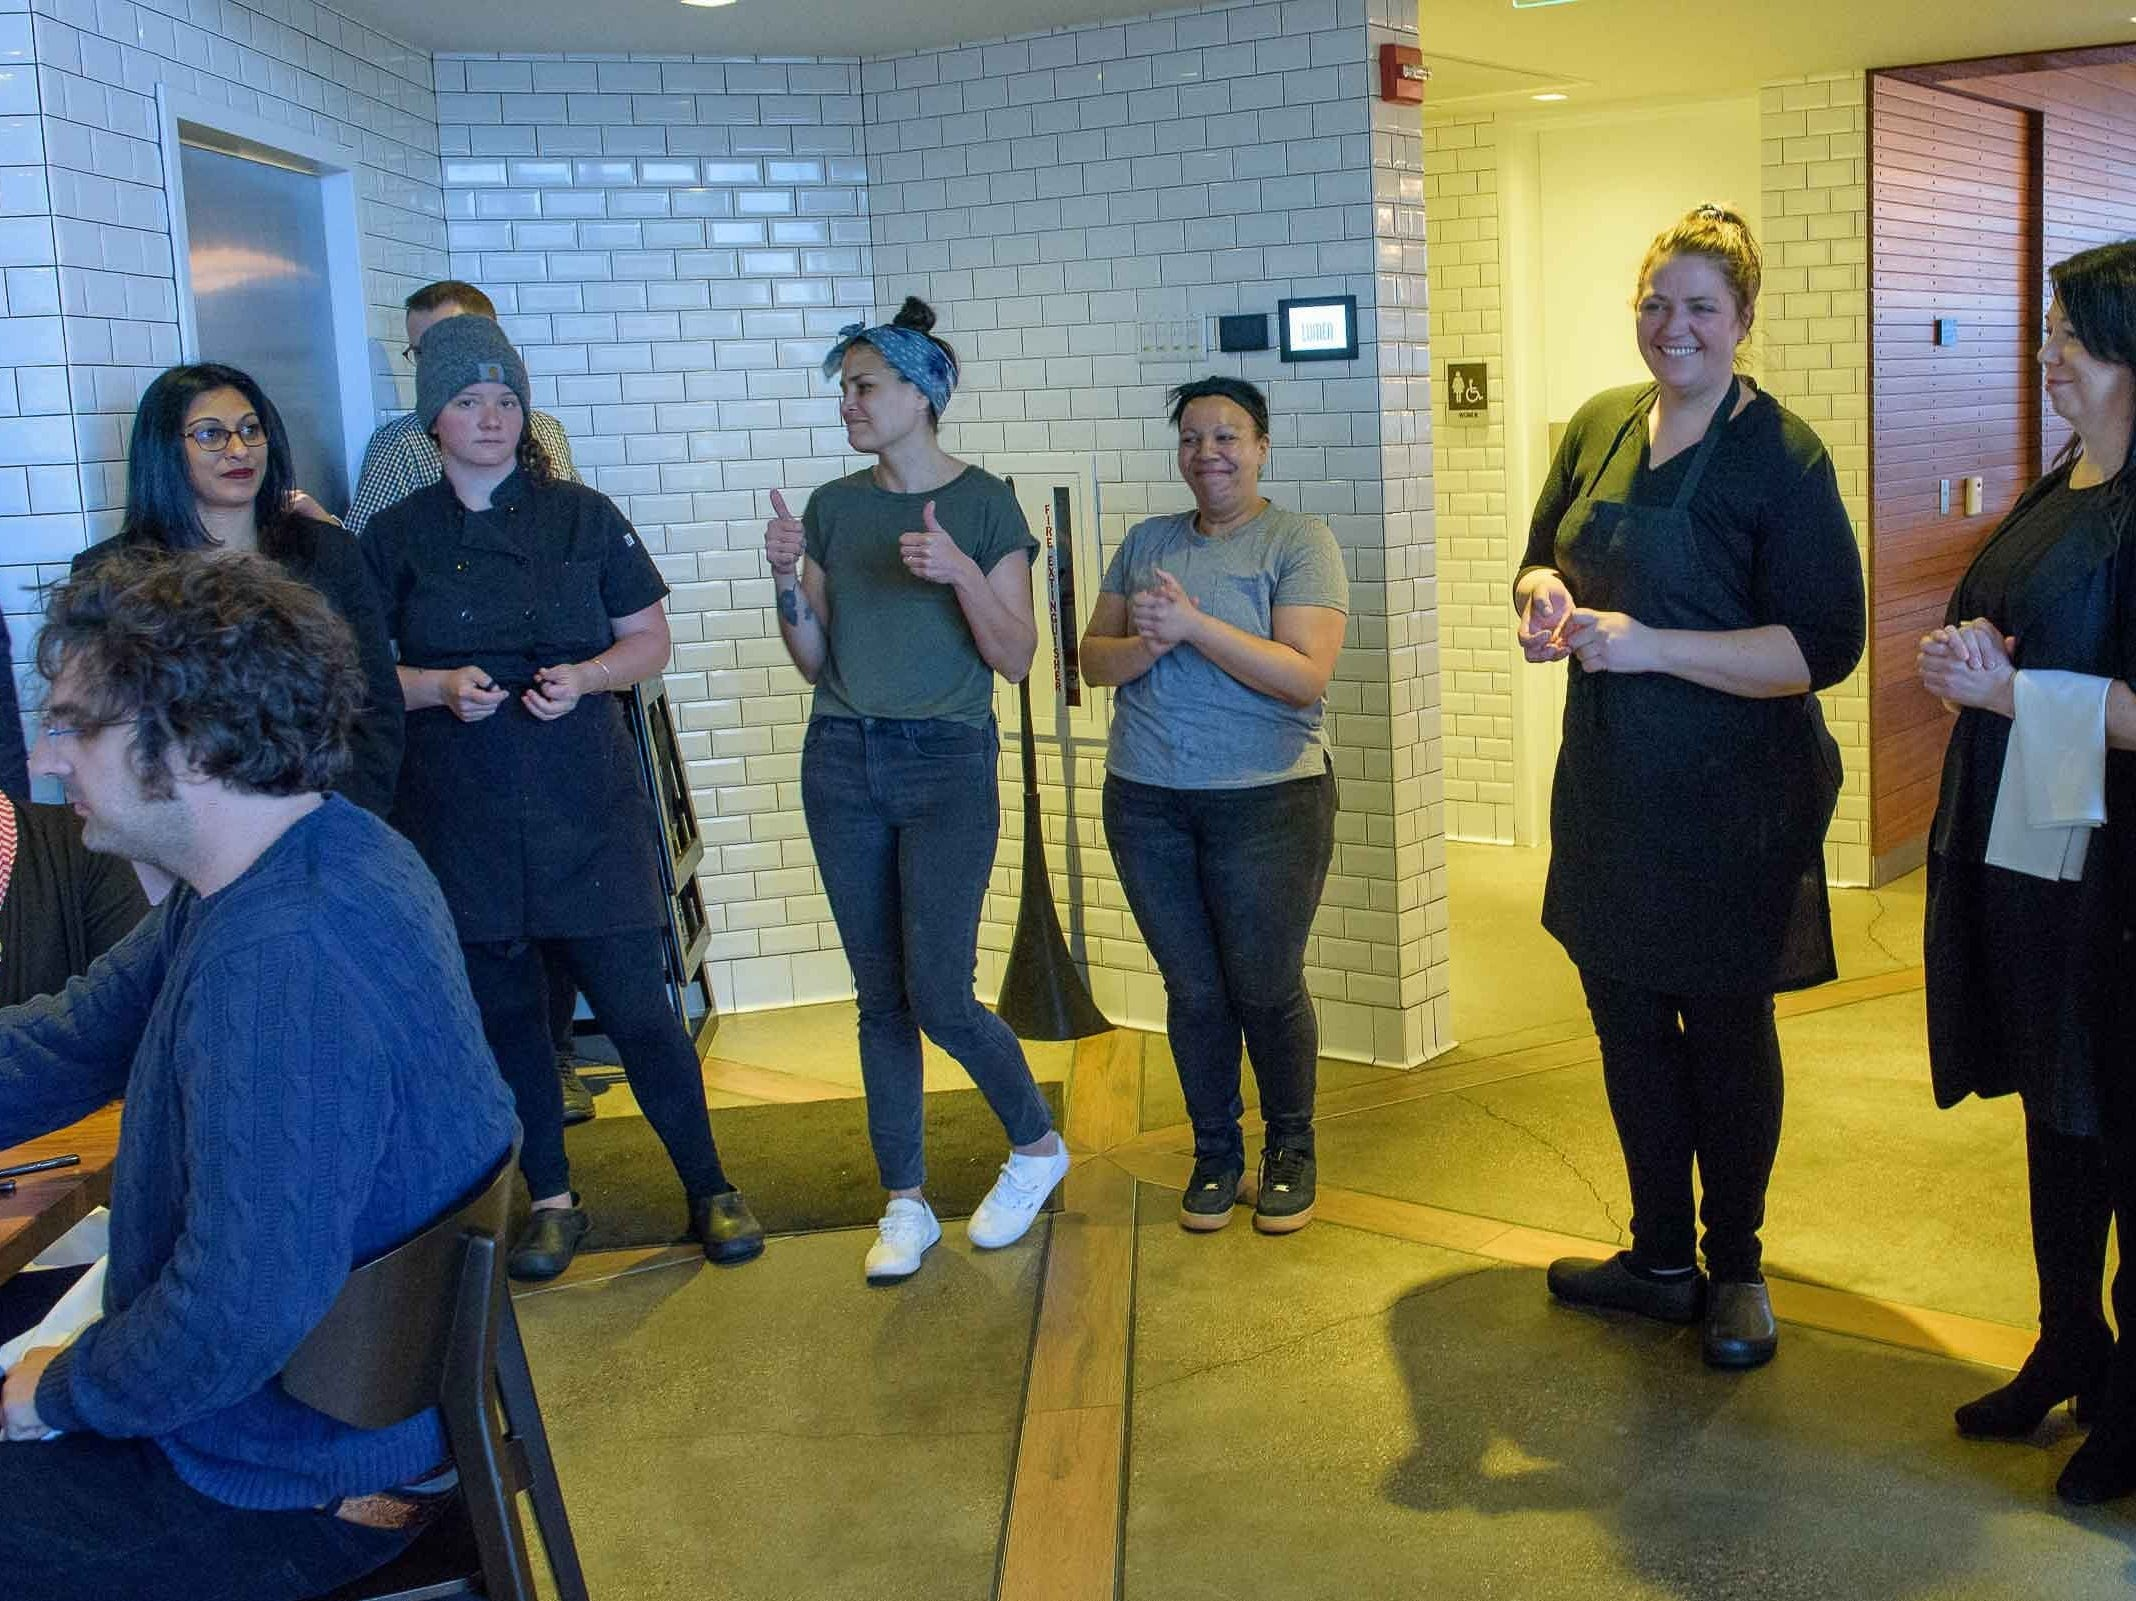 The Freep Film Festival and Lumen restuarant hosted Brunch and a movie April 14, 2019. Brunch consisted of a four course meal prepared by four of Detroits top female chefs, Gabby Milton, Sarah Welsh, Emmele Herrold and Kiki Louya.